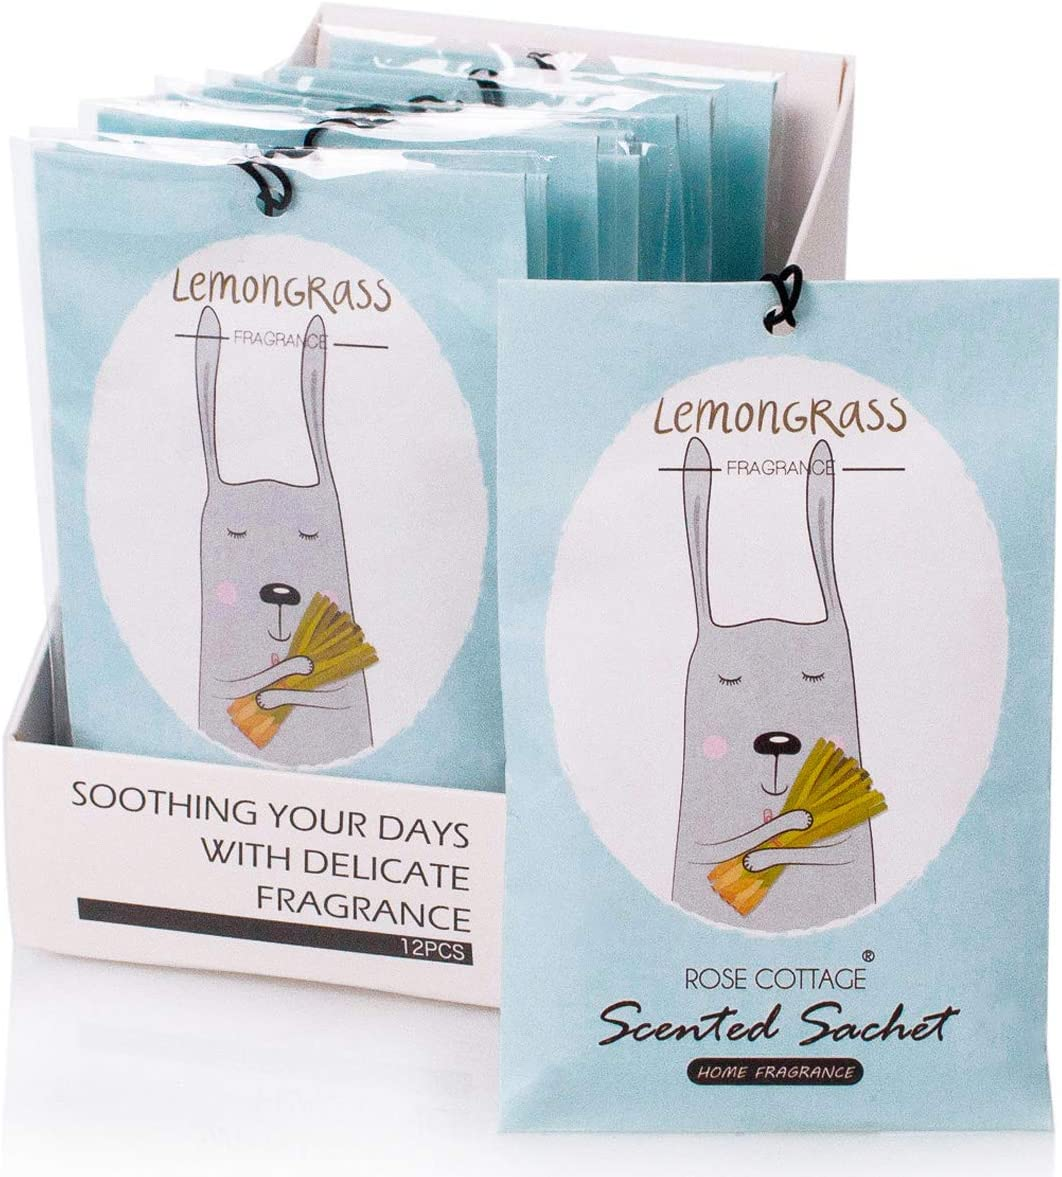 12Packs Lemongrass Closet Air Freshener Deodorizer Scented Sachets Bags for Drawer and Closet 16 Scents Optional-ROSE COTTAGE